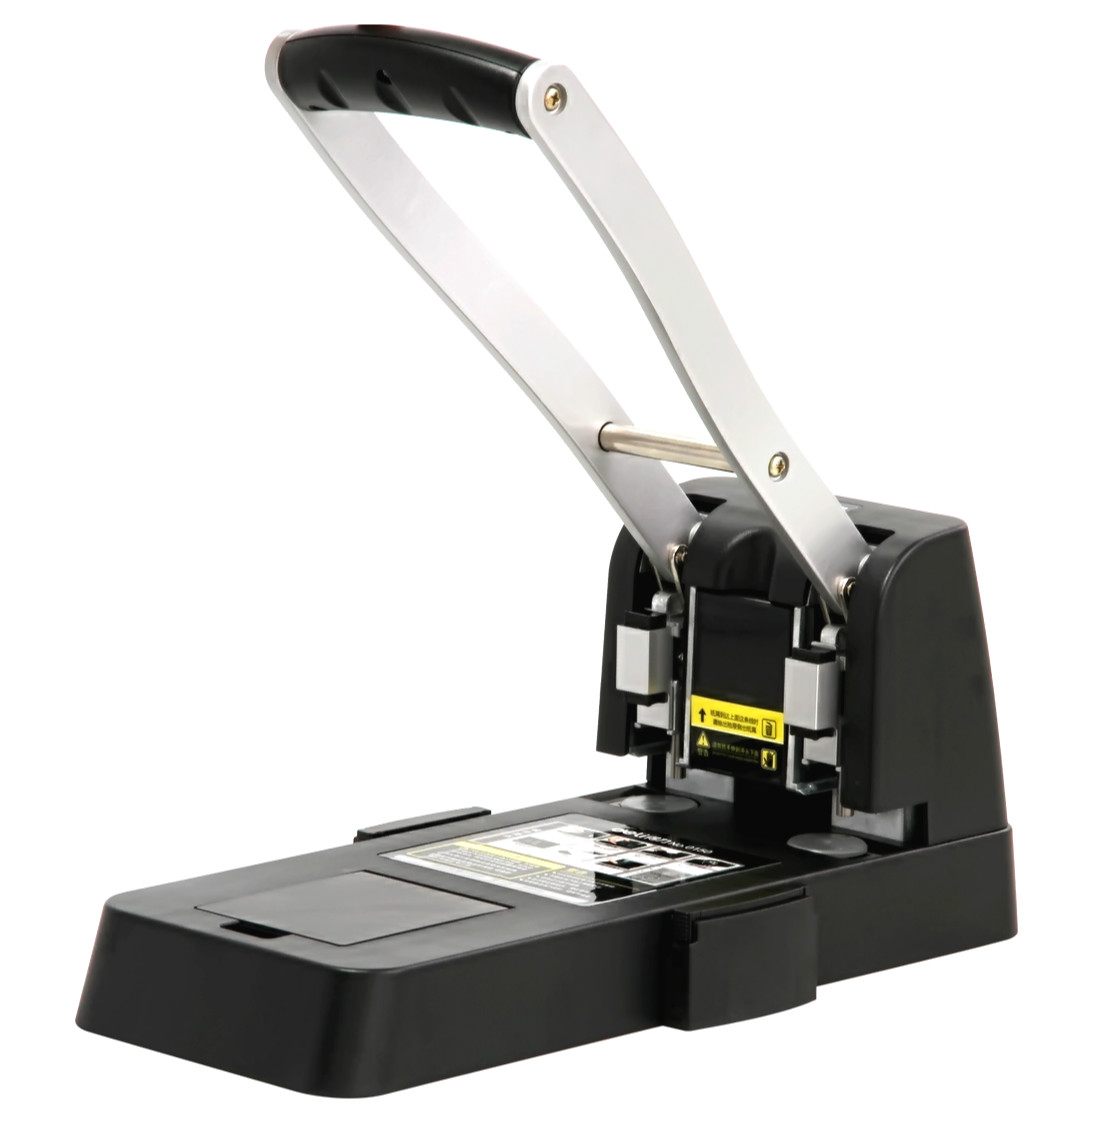 DELI  Heavy Duty Punchers Two-hole Loose-leaf Hole Punch Office Puncher File Paper Hole Punch 150 Sheets Punch Manual Punchers